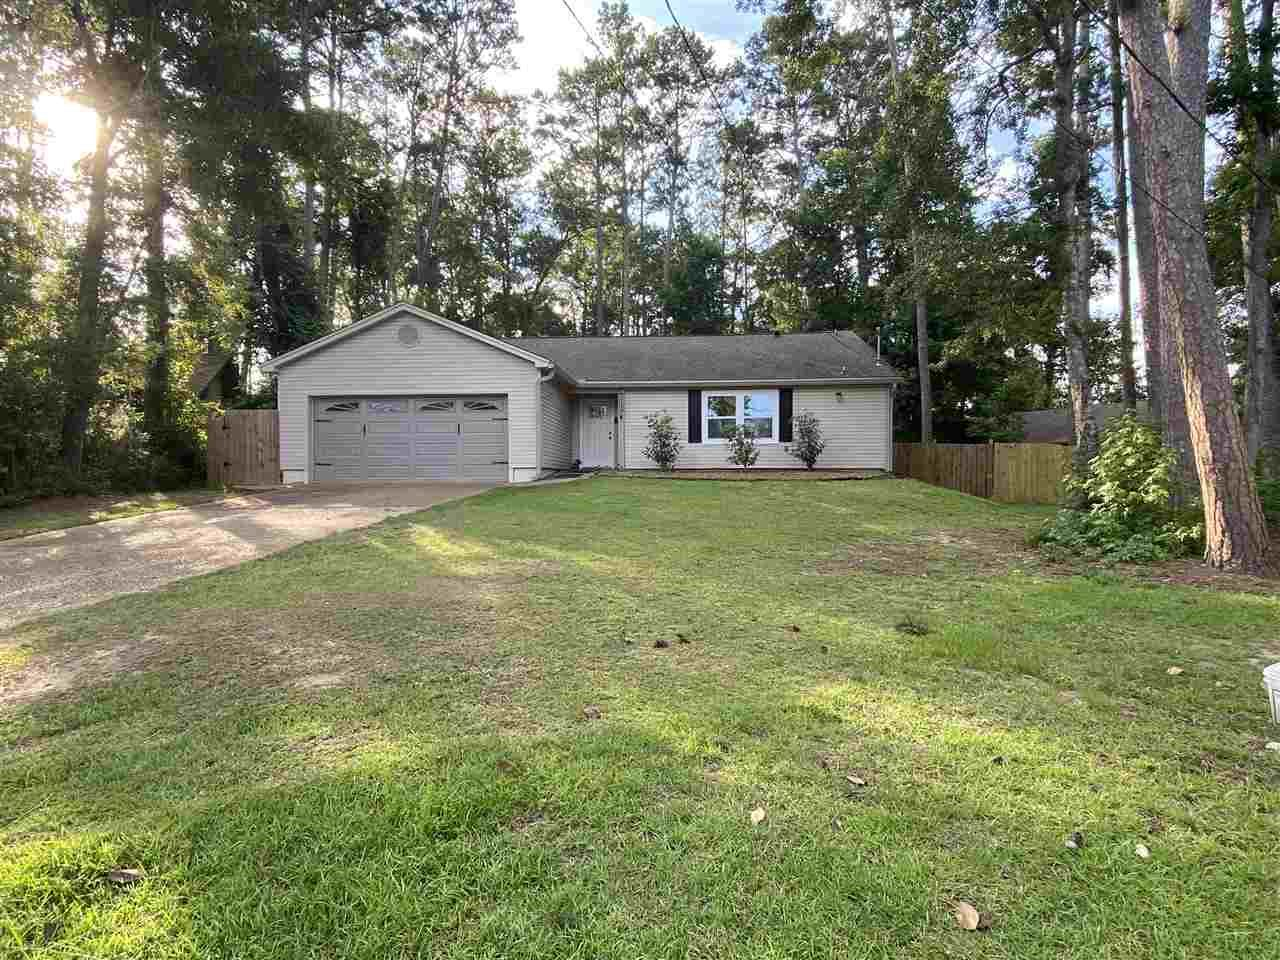 296 Astro Court, Tallahassee, FL 32312 - MLS#: 324762